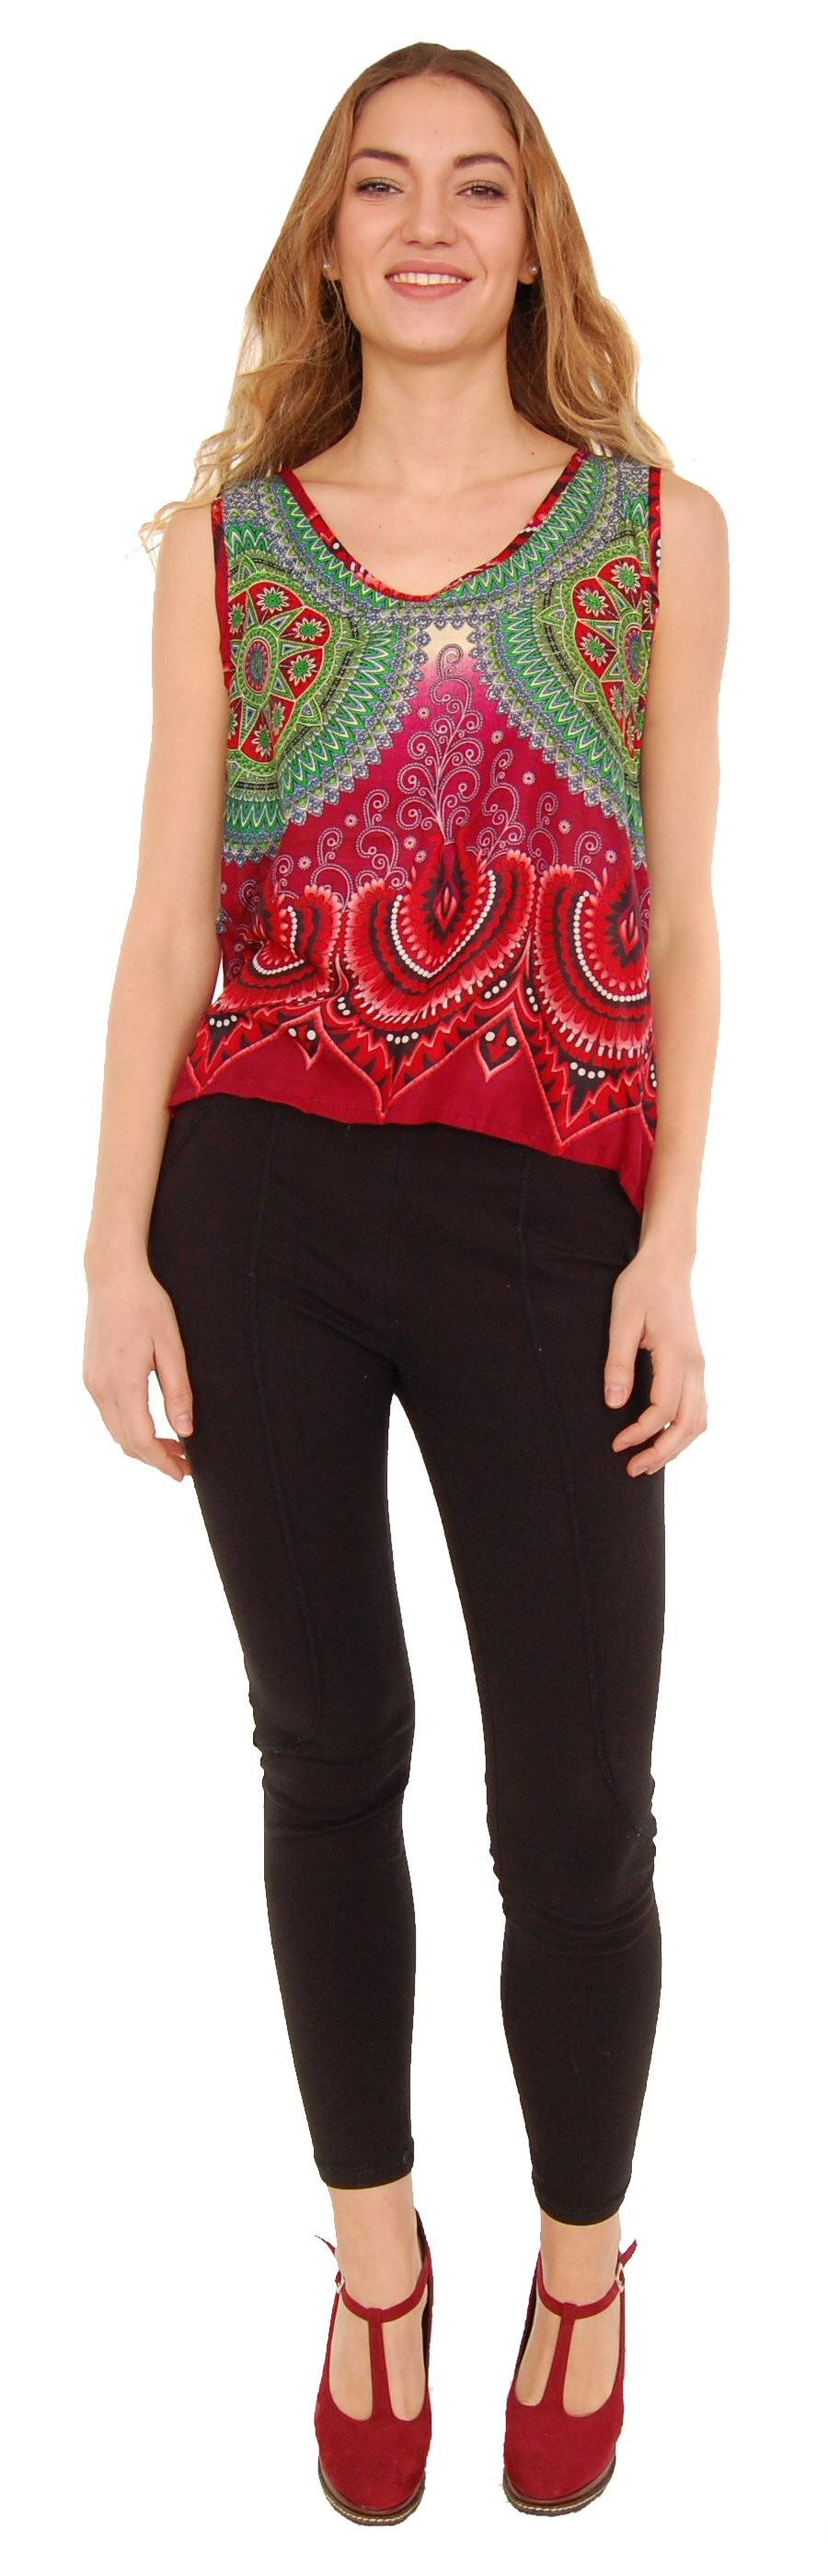 TOP MAGLINA FANTASIE AB-BCT06BE - Oriente Import S.r.l.